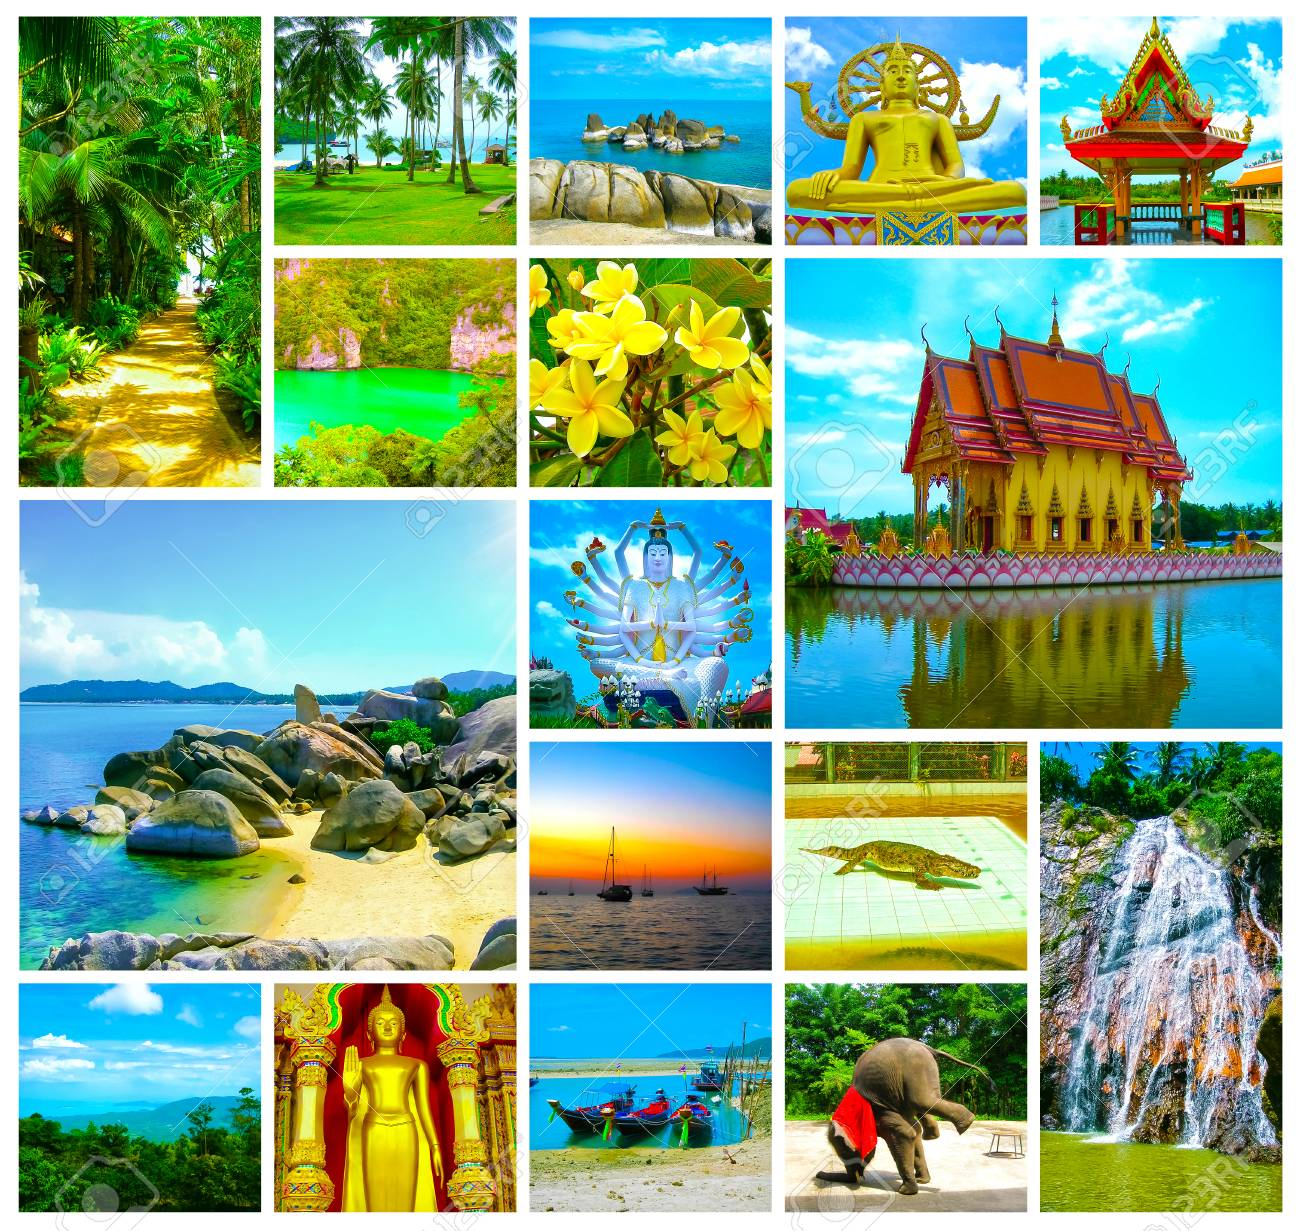 The Collage From Views Of Samui Island Thailand Stock Photo